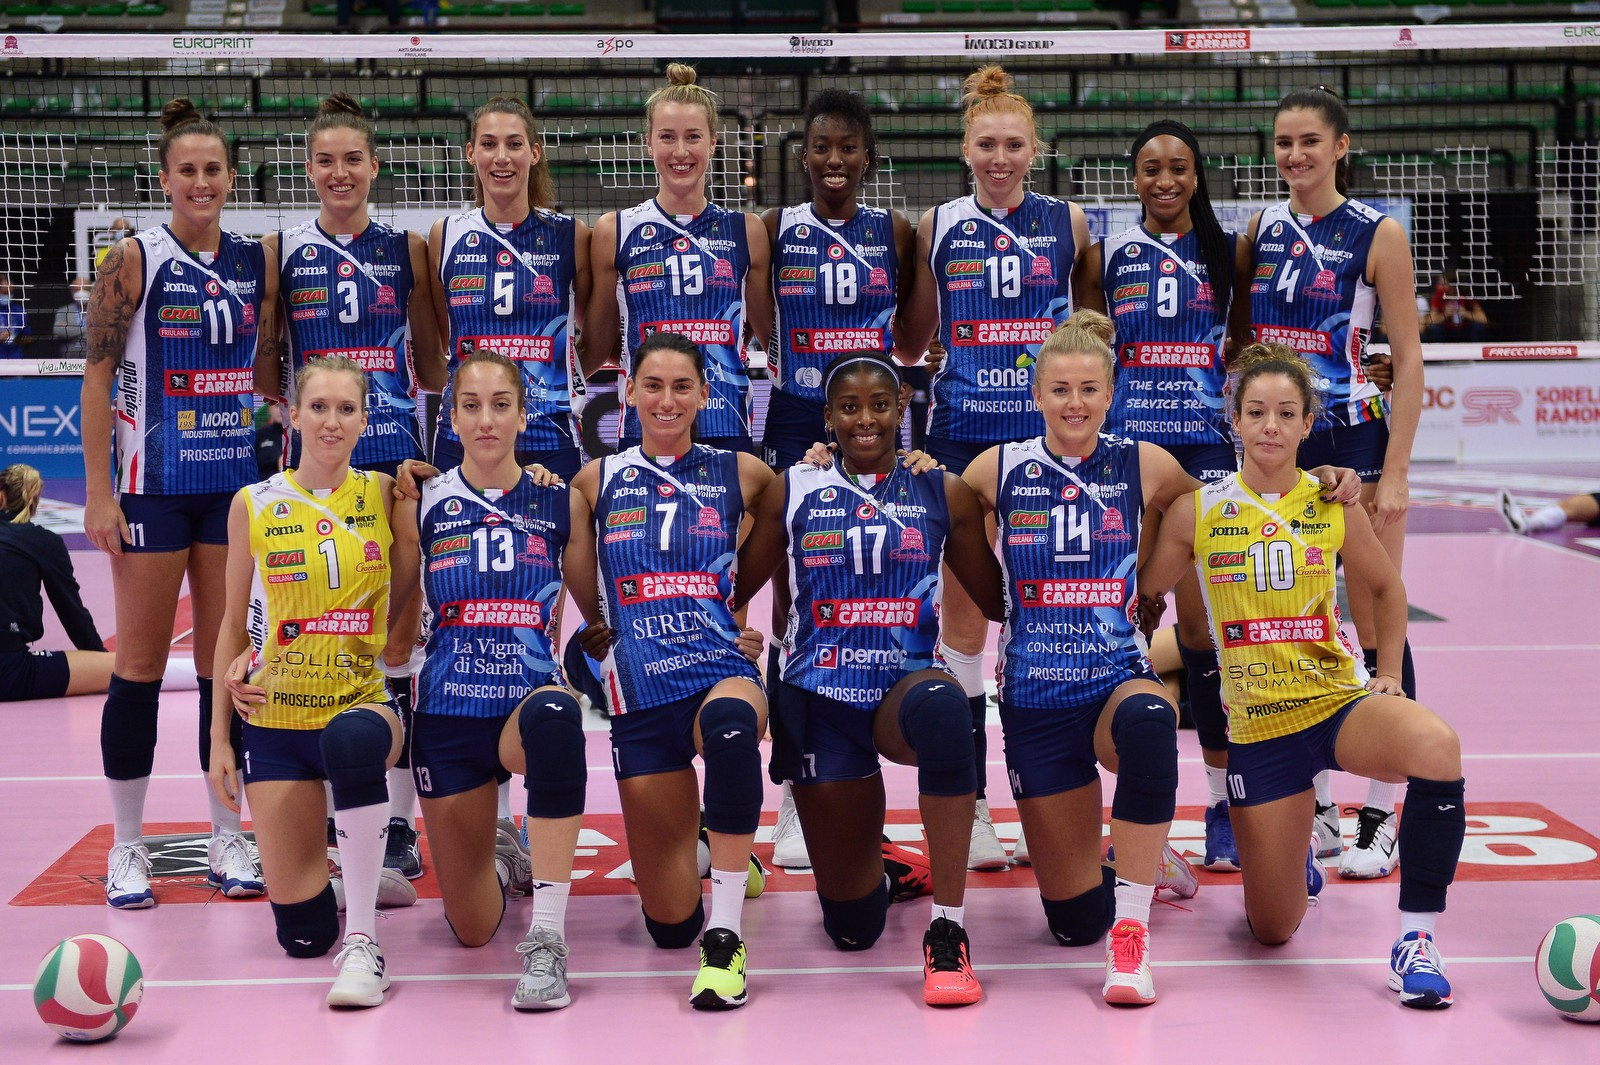 Roster Imoco Volley 2020-21